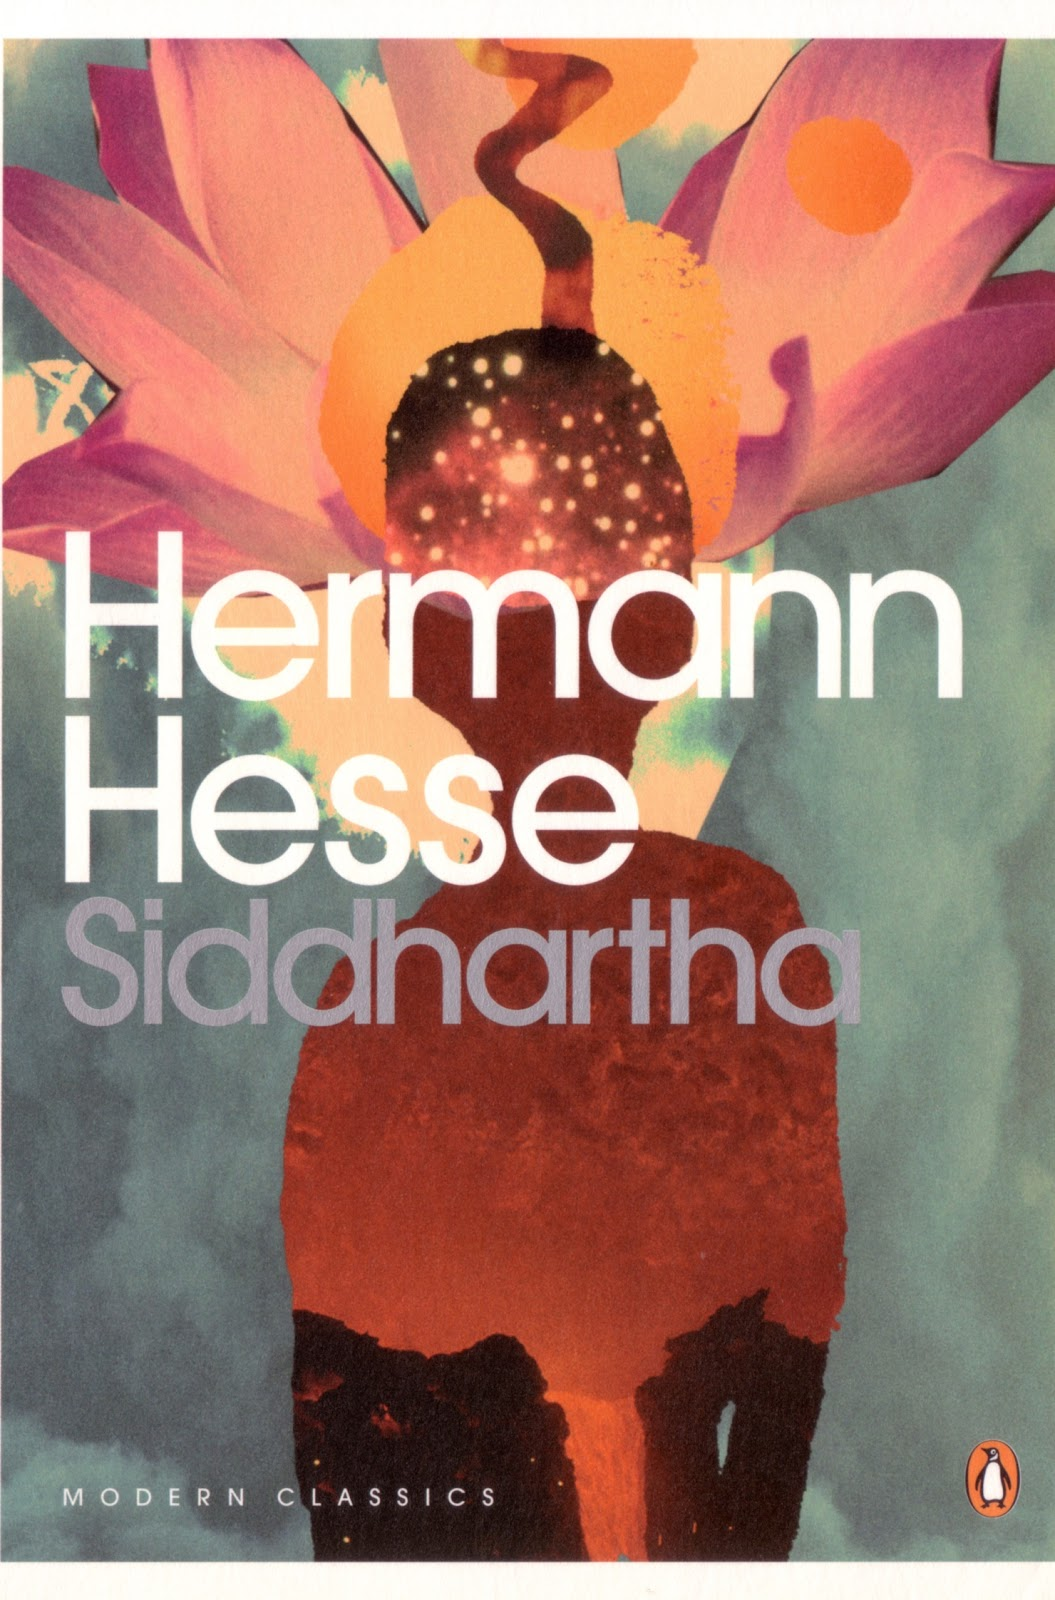 unity in siddhartha by herman hesse Hesse begins by showing us the life of a privileged brahmin's son handsome, well-loved, and growing increasingly dissatisfied with the life expected of him, siddhartha sets out on his journey, not realizing that he is fulfilling the prophesies proclaimed at his birth.